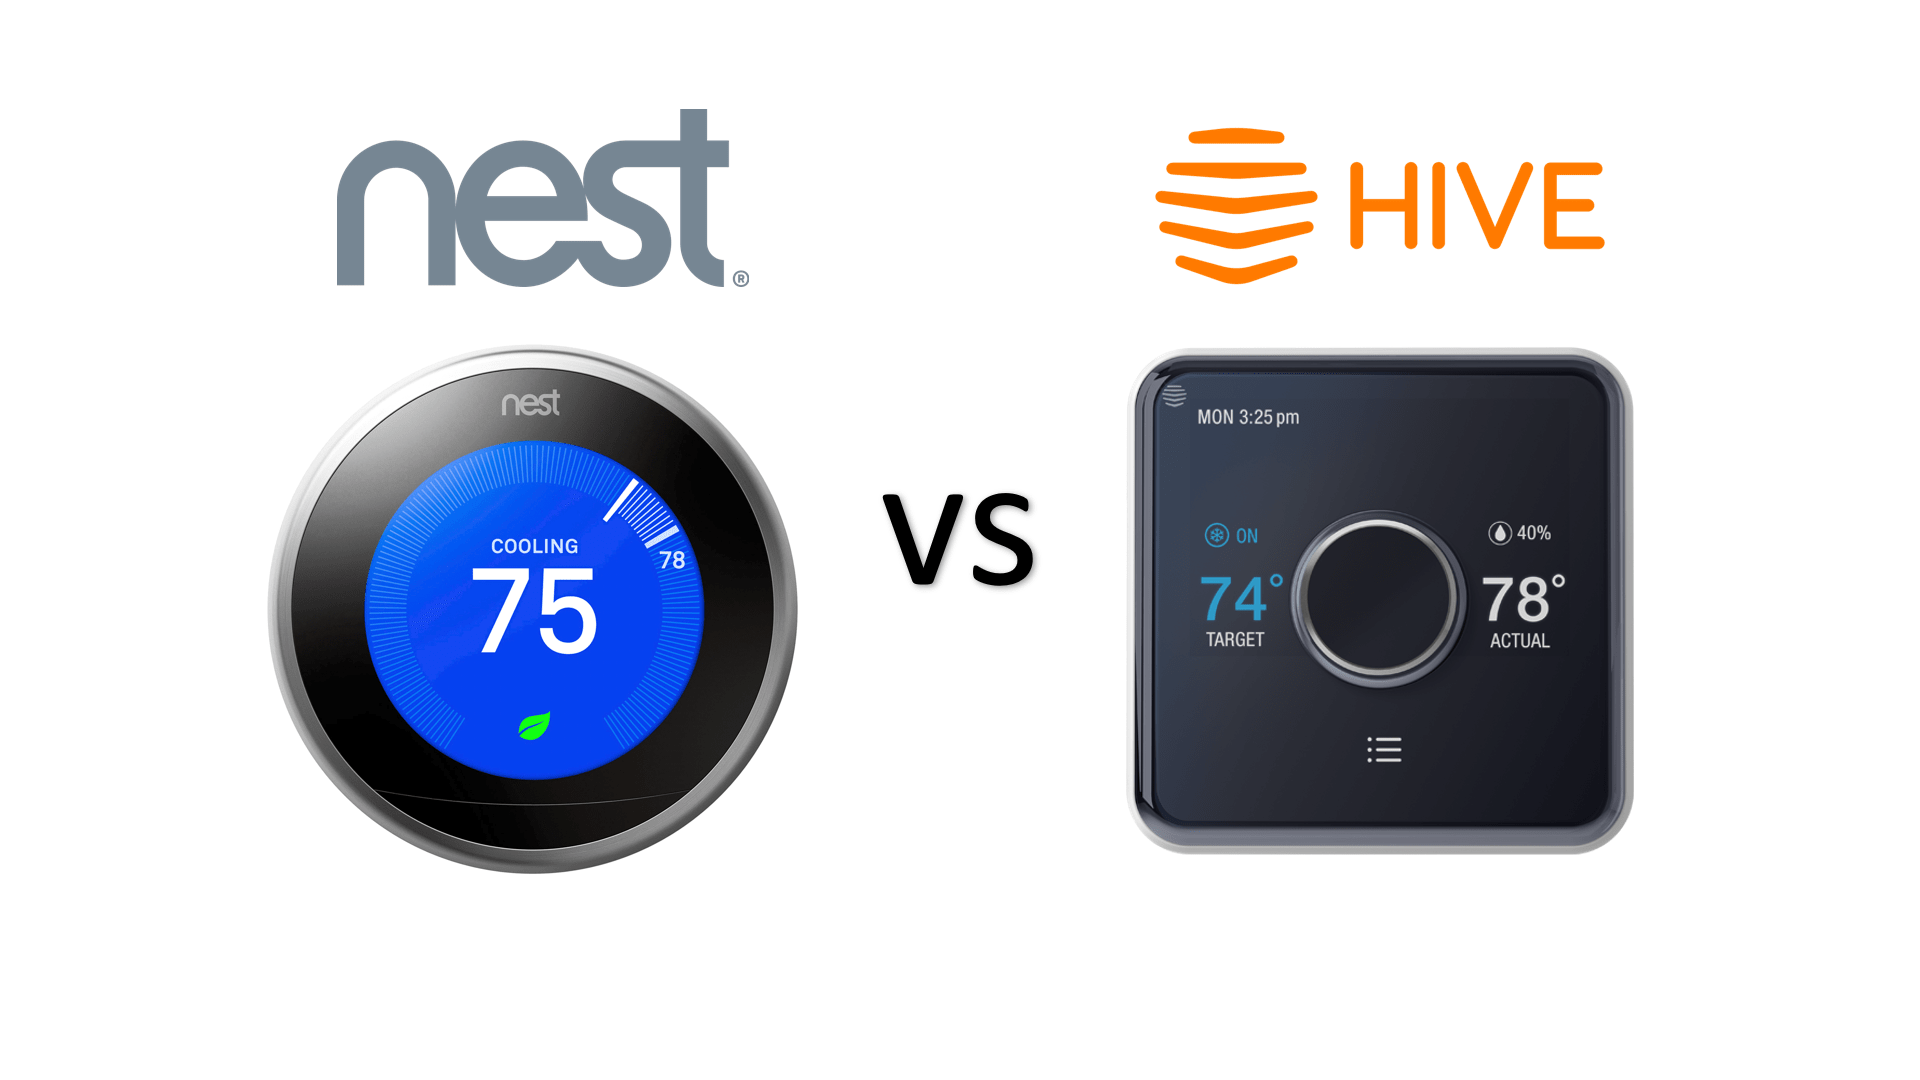 There S Only One Winner Hive Vs Nest